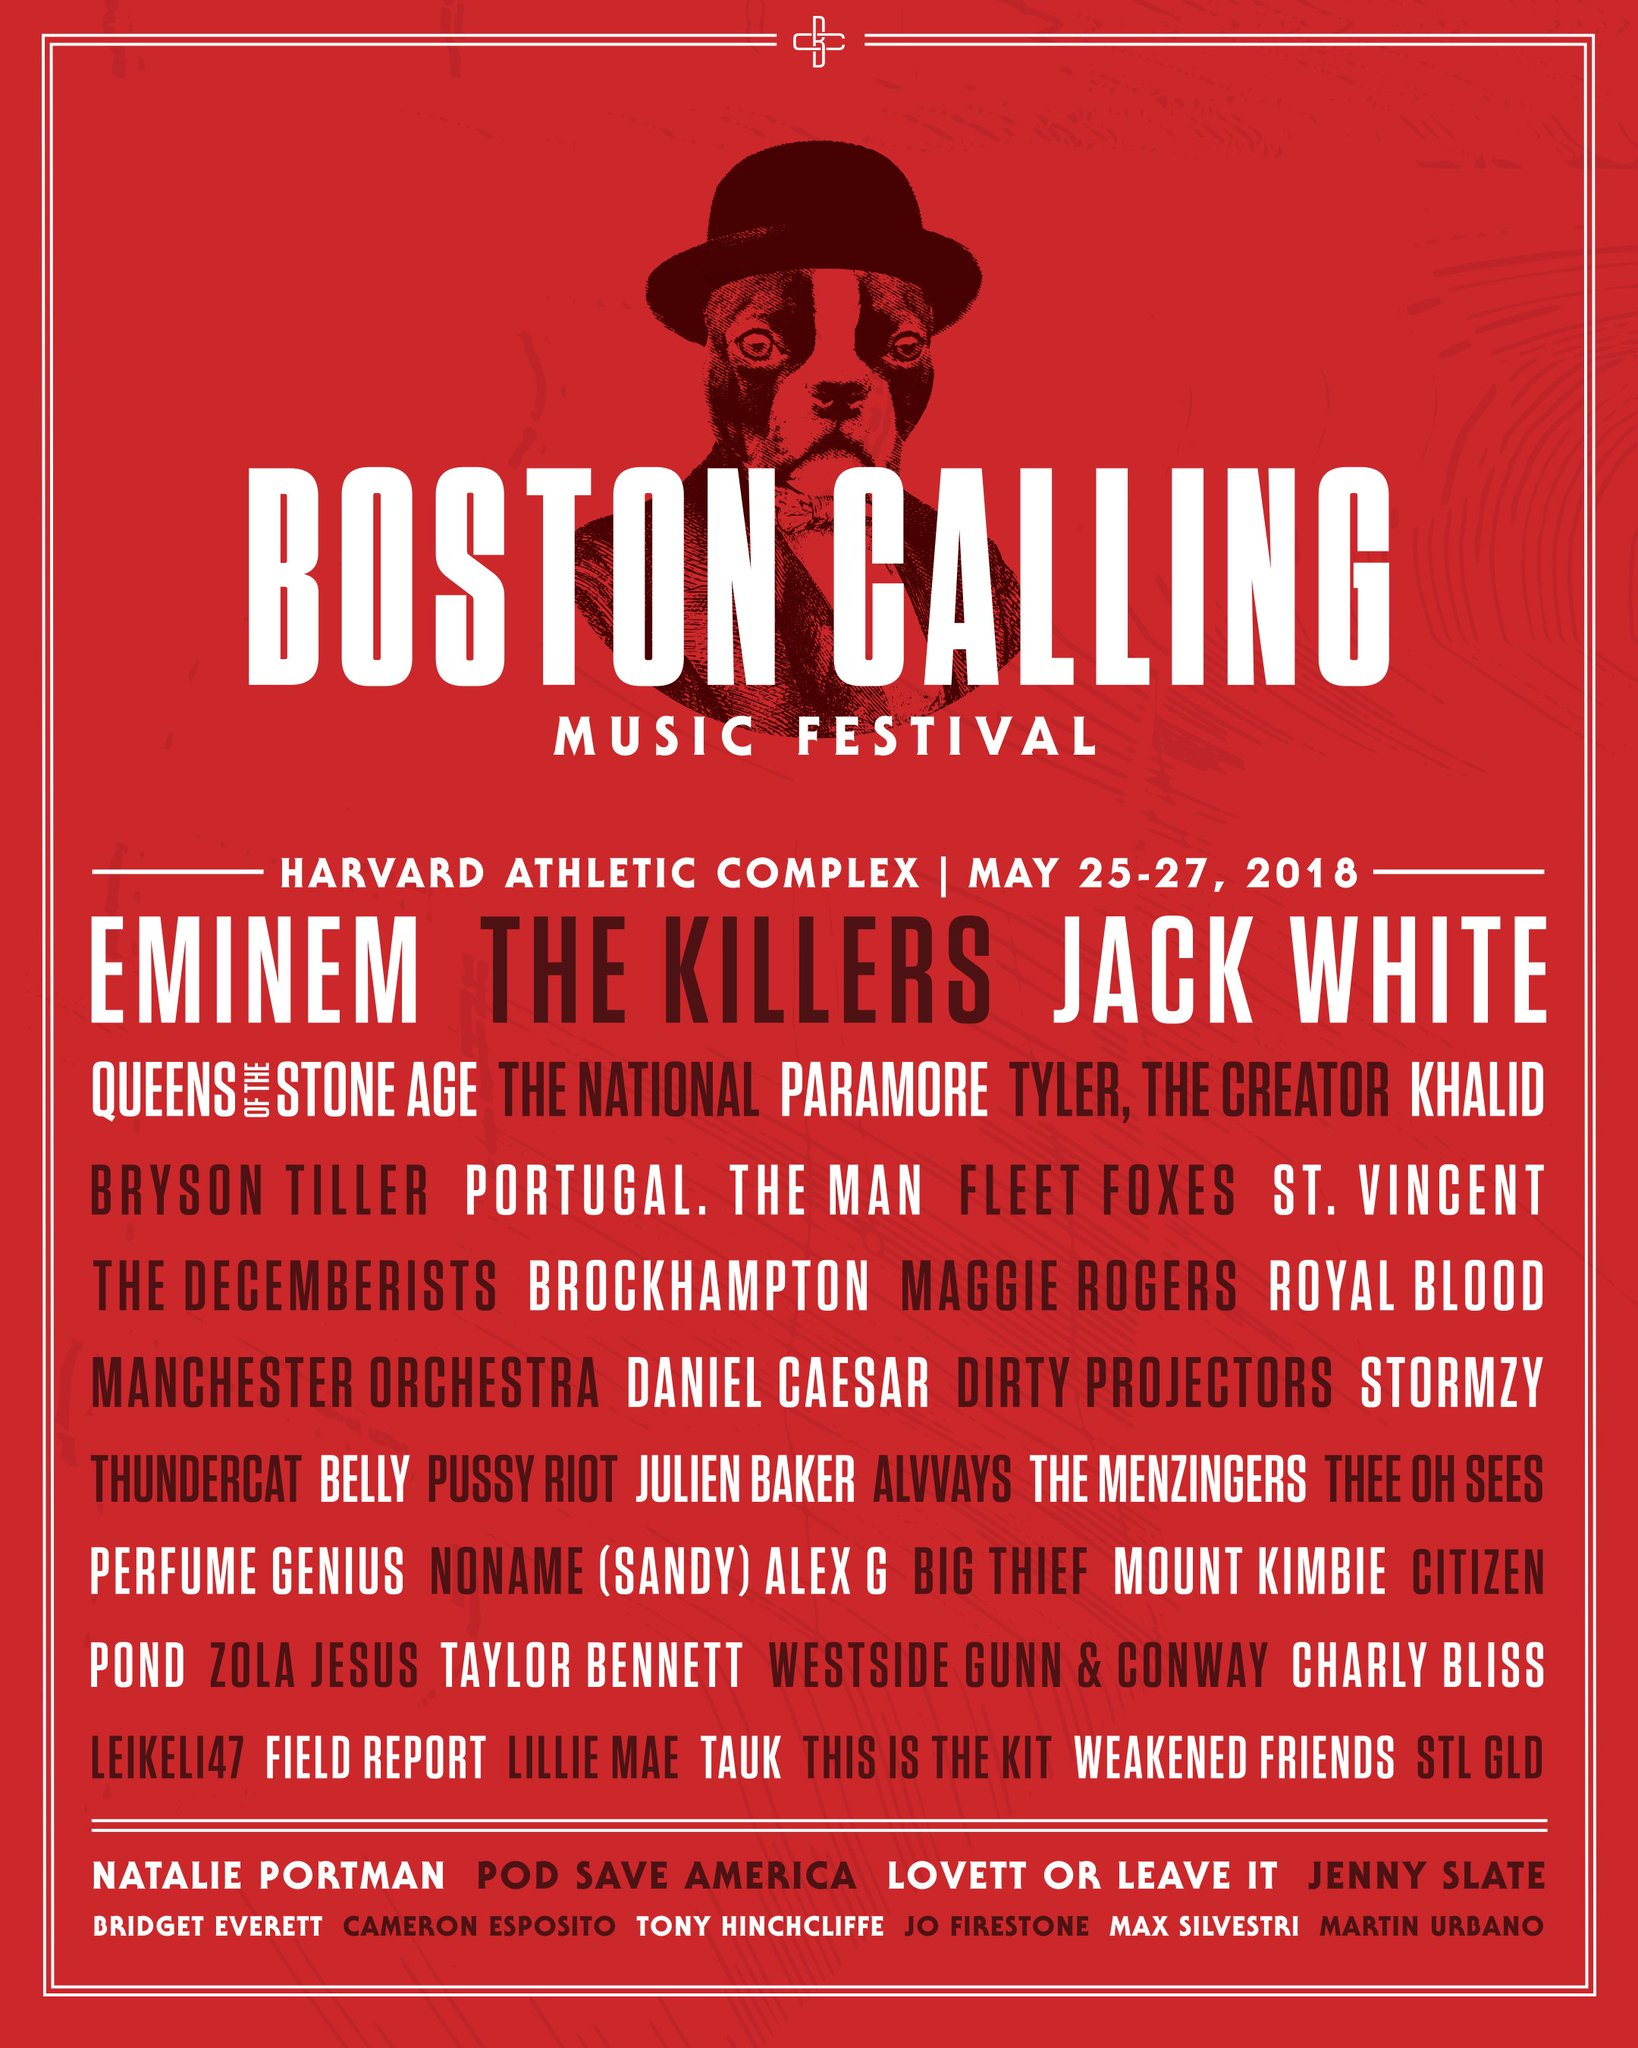 gonna make a lot of new friends in 2018. here we go. @Boston_Calling, see you there. https://t.co/PiUPsY5Udl https://t.co/Y6Kwr2QNet